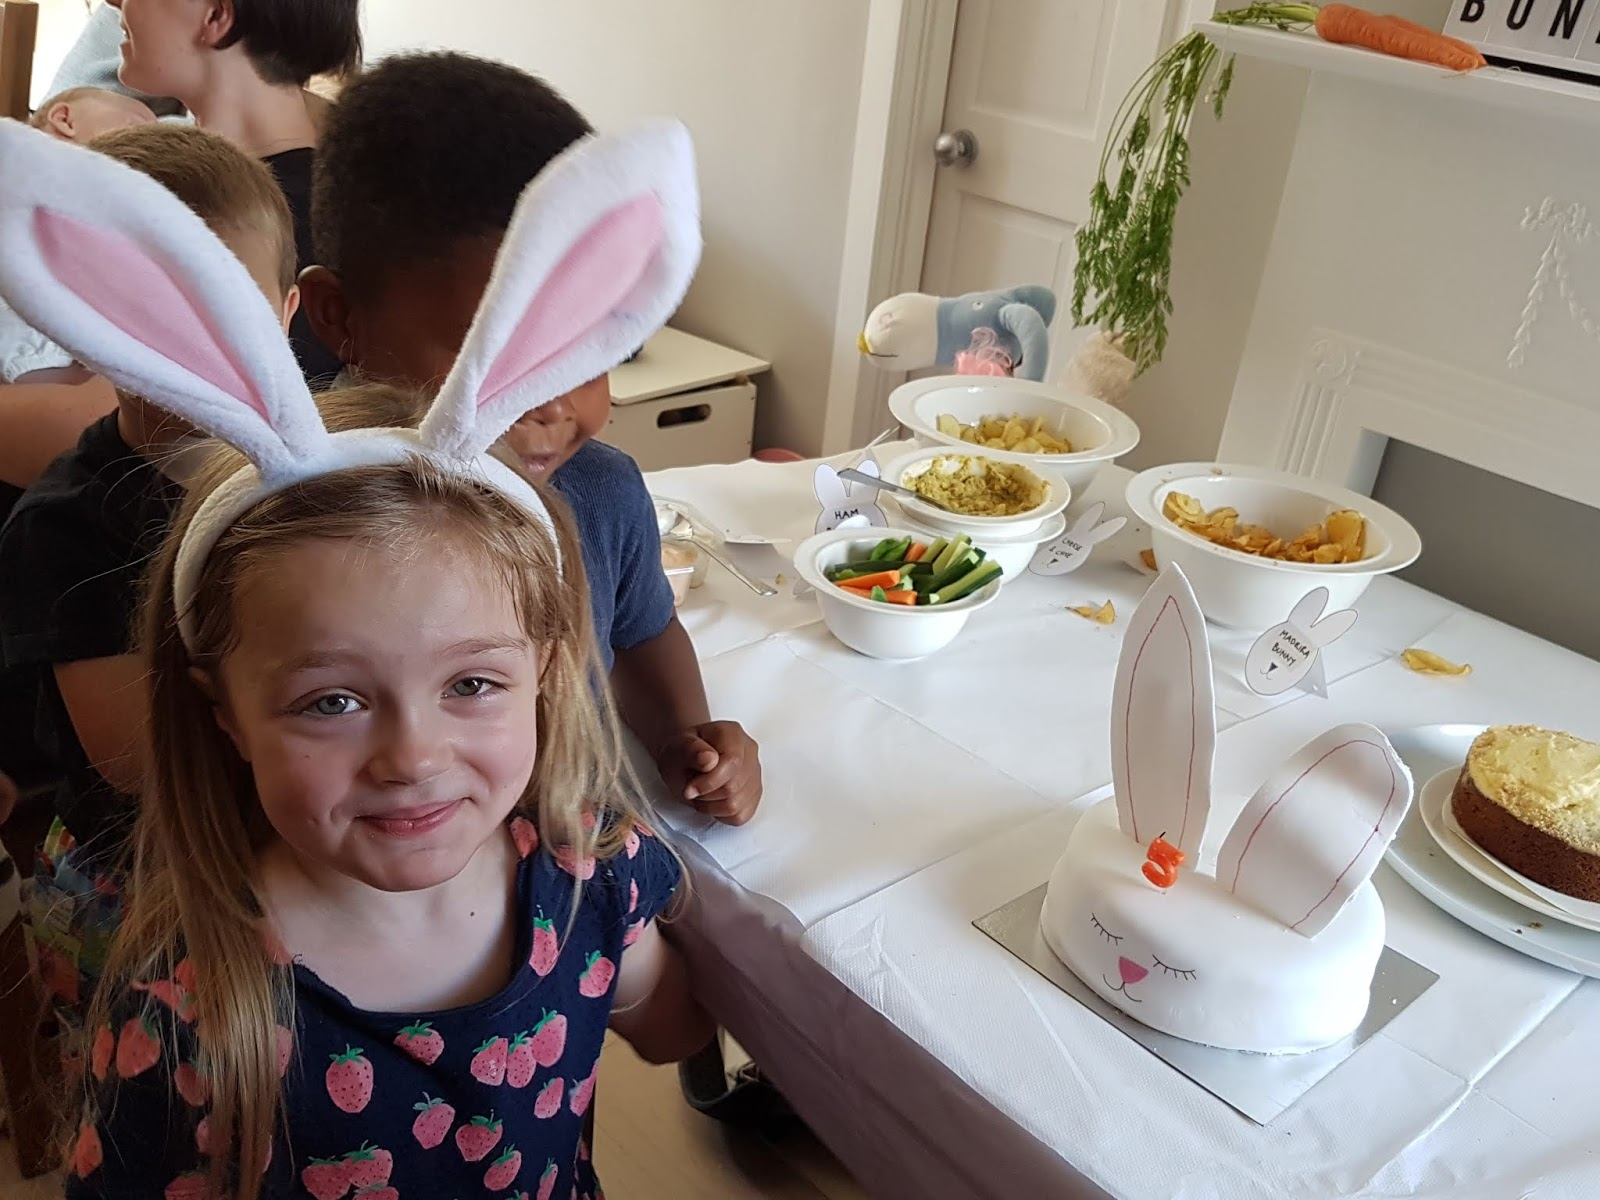 girl in bunny ears with a bunny cake